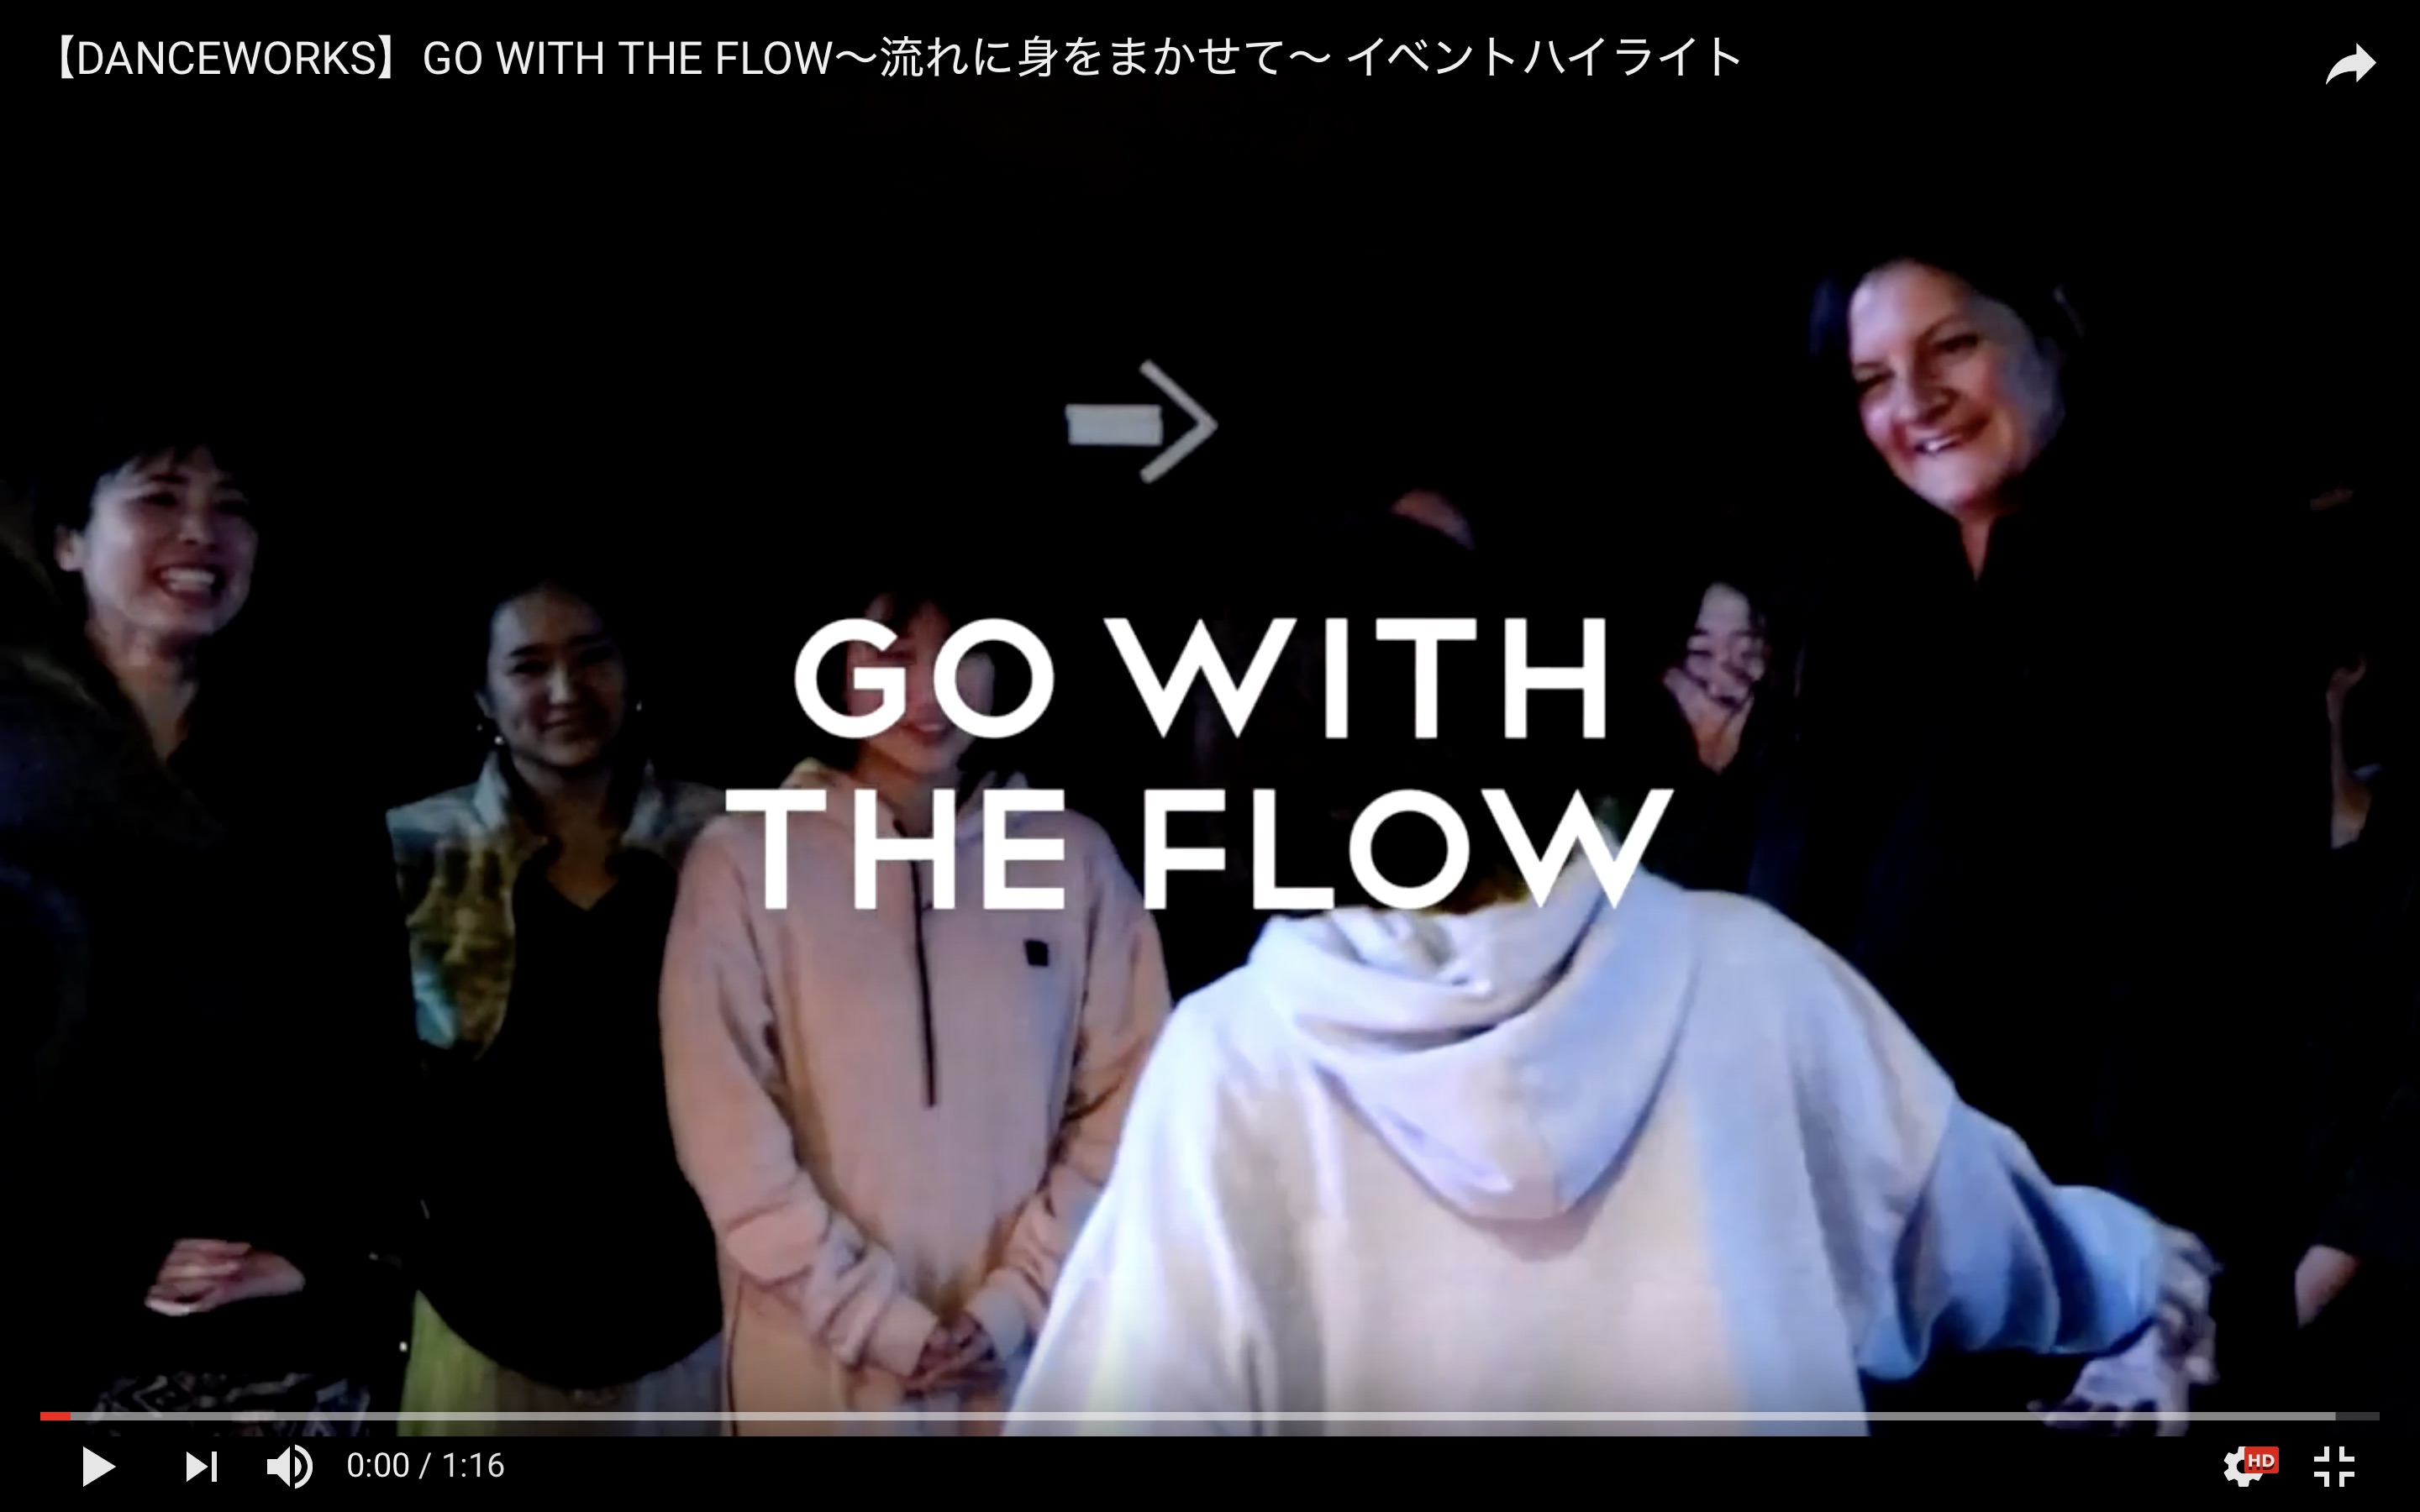 【DANCE WORKS】Go with the flow〜流れに身を任せて〜 ハイライト映像公開!